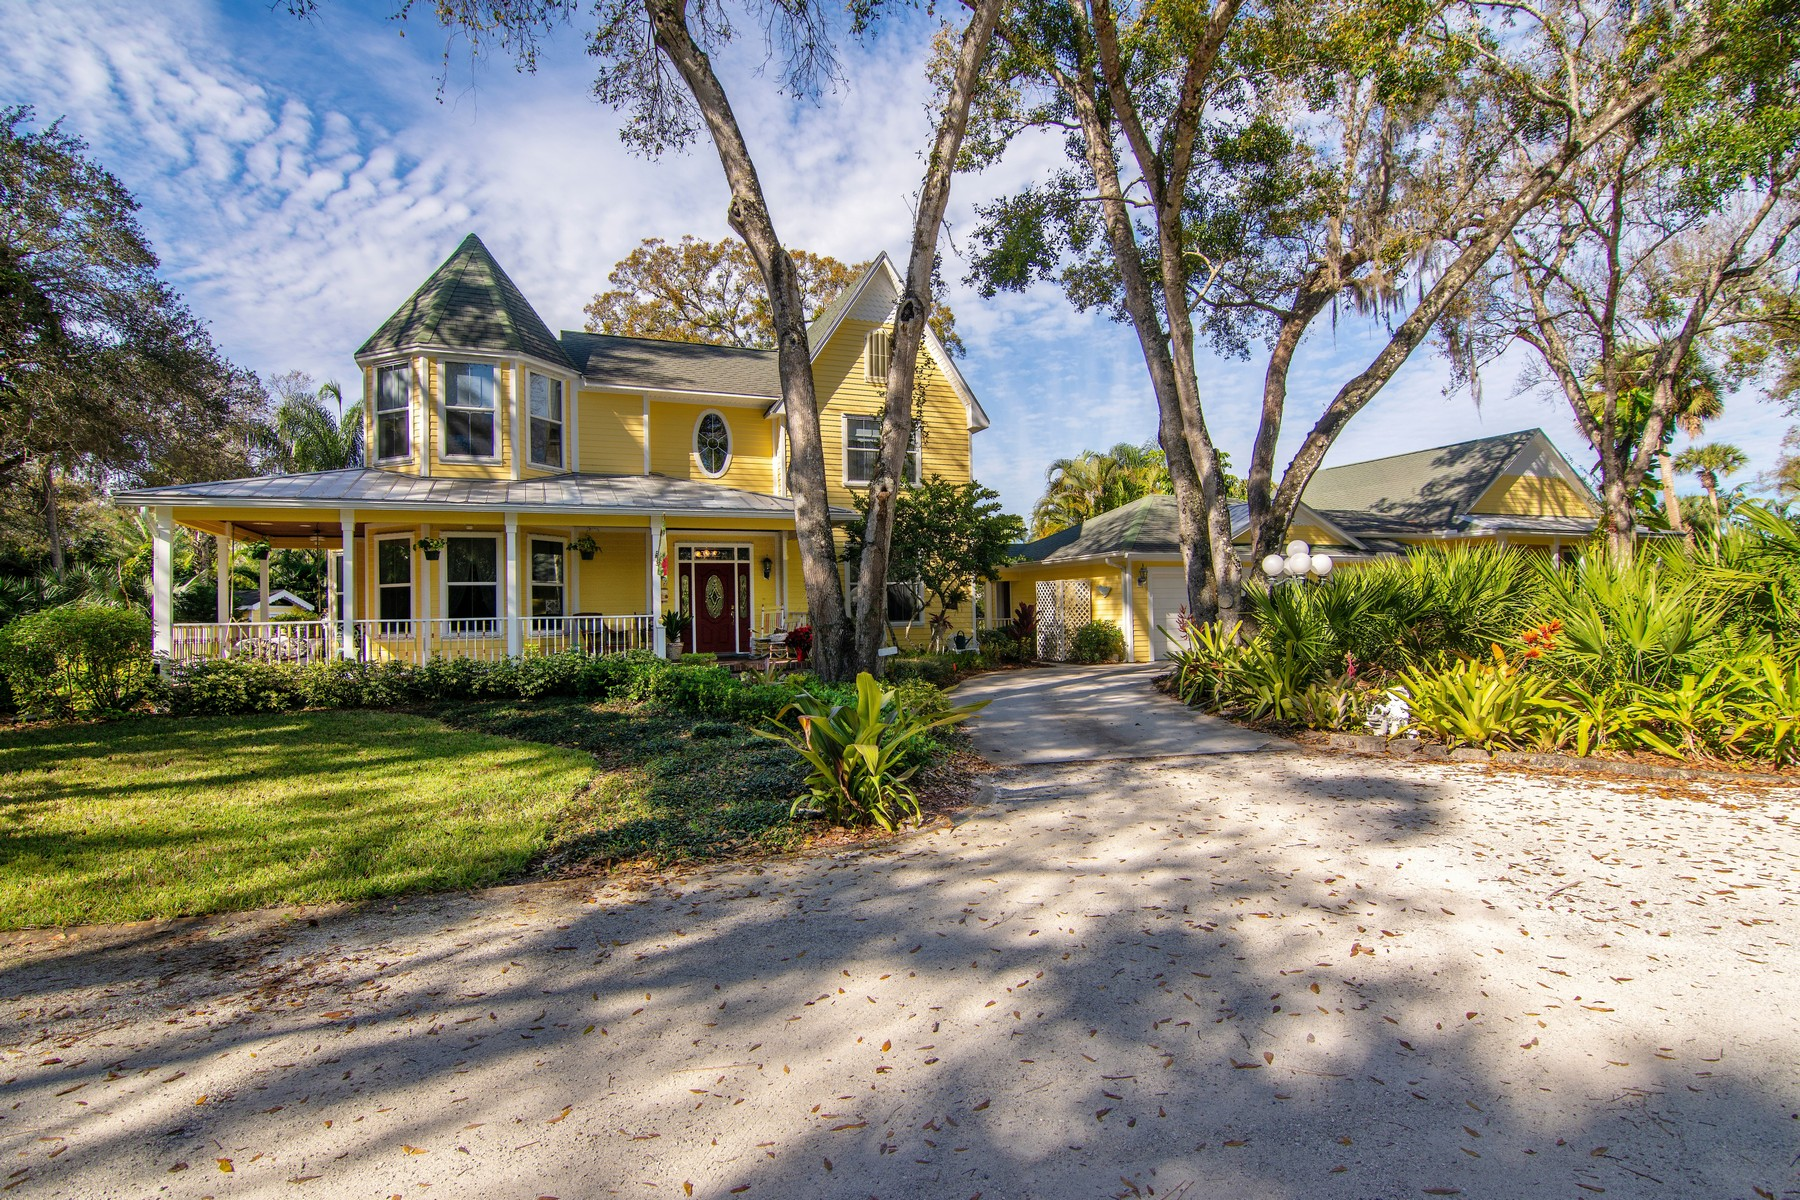 Single Family Home for Sale at Victorian Home With True Southern Charm 5322 16th Street Vero Beach, Florida 32966 United States